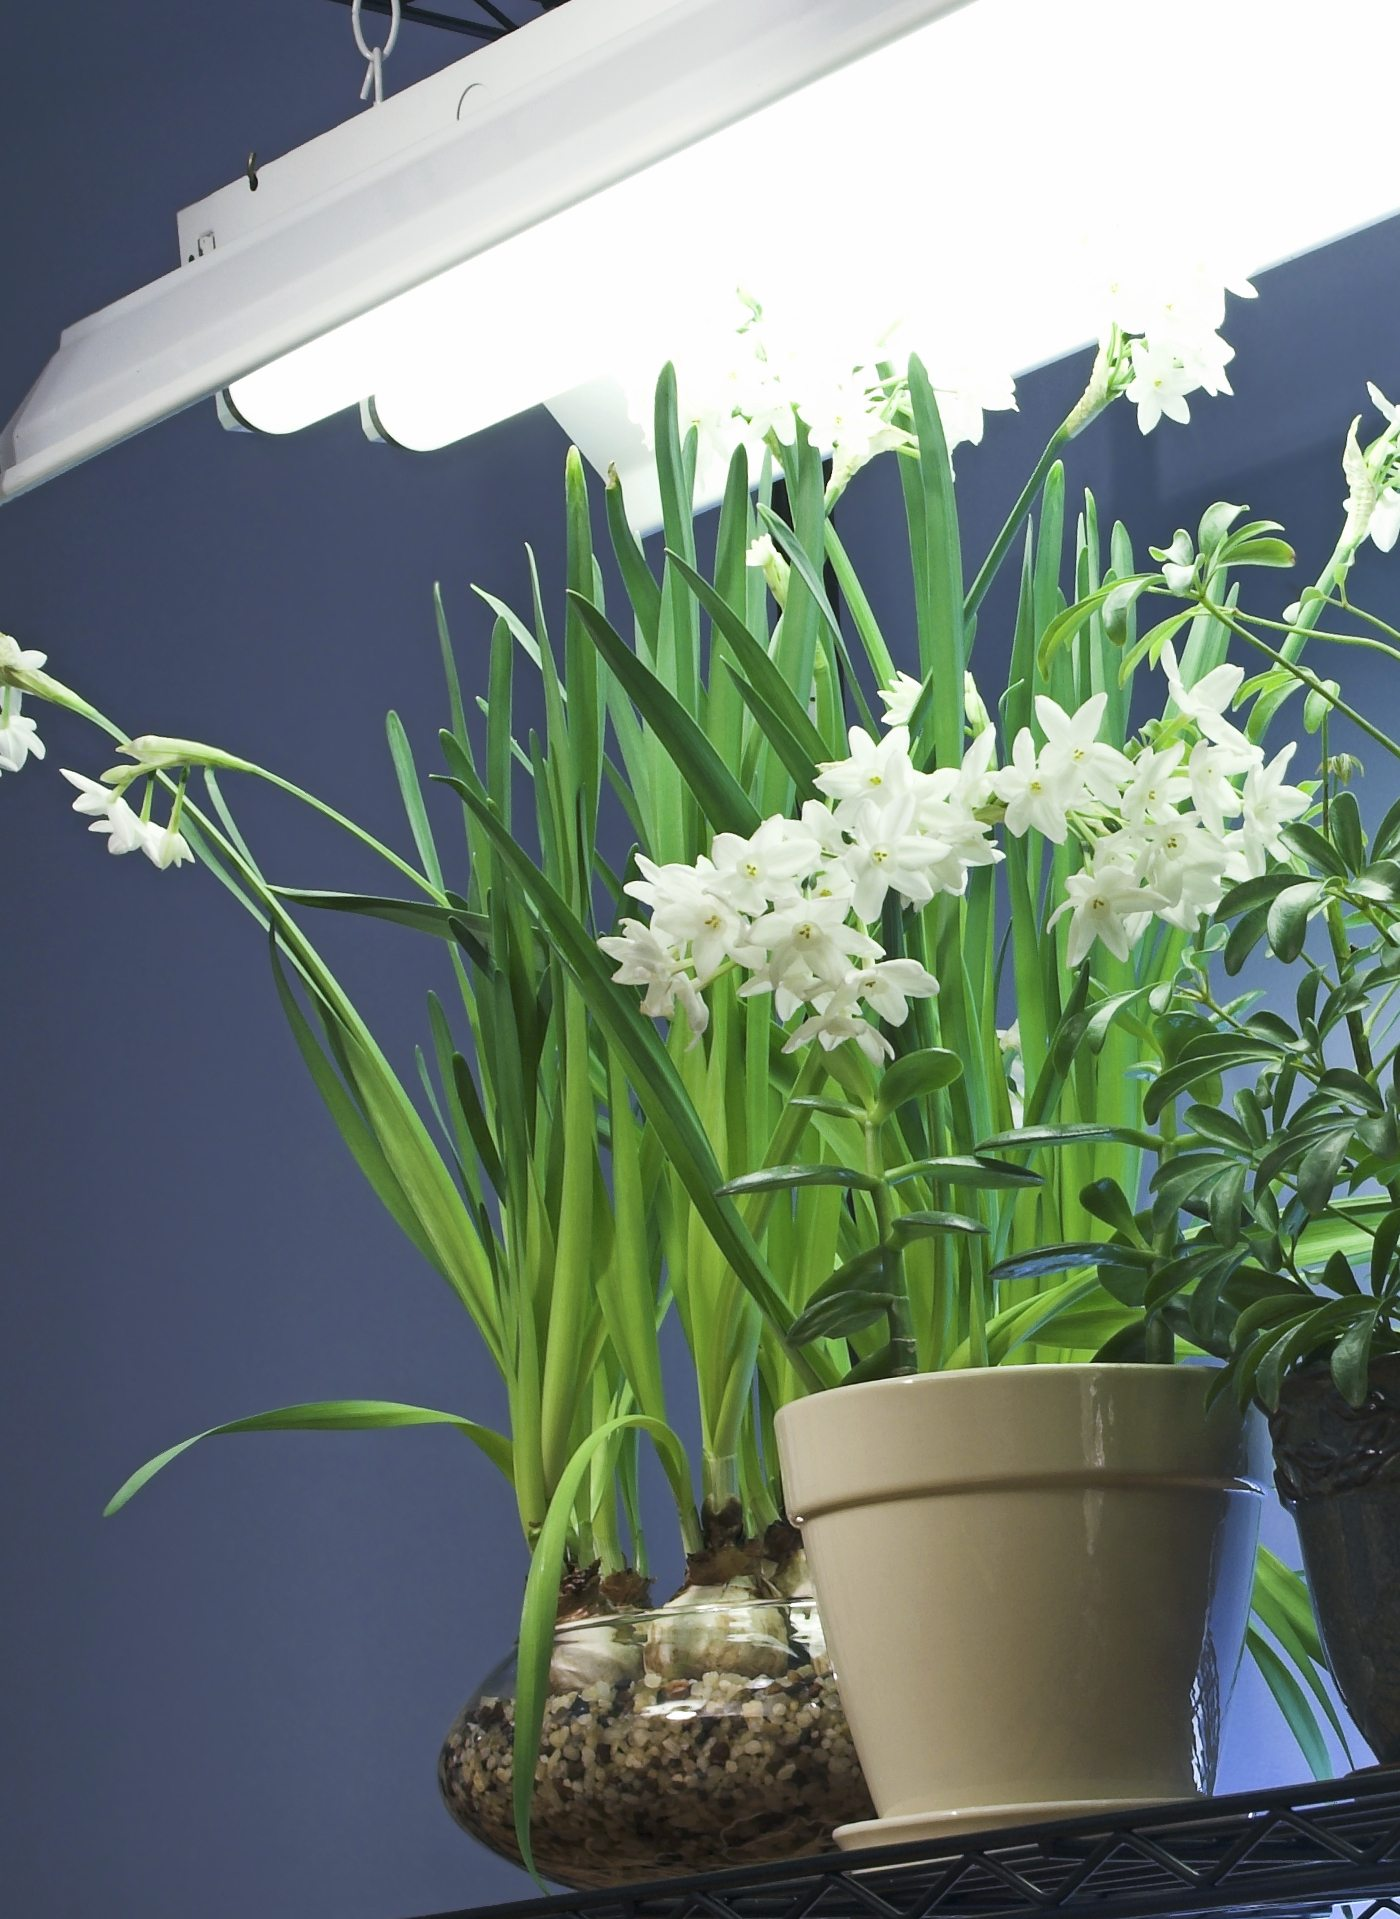 Grow Lights For Indoor Plants Fluorescent Lighting For Indoor Gardening Gardening Know How